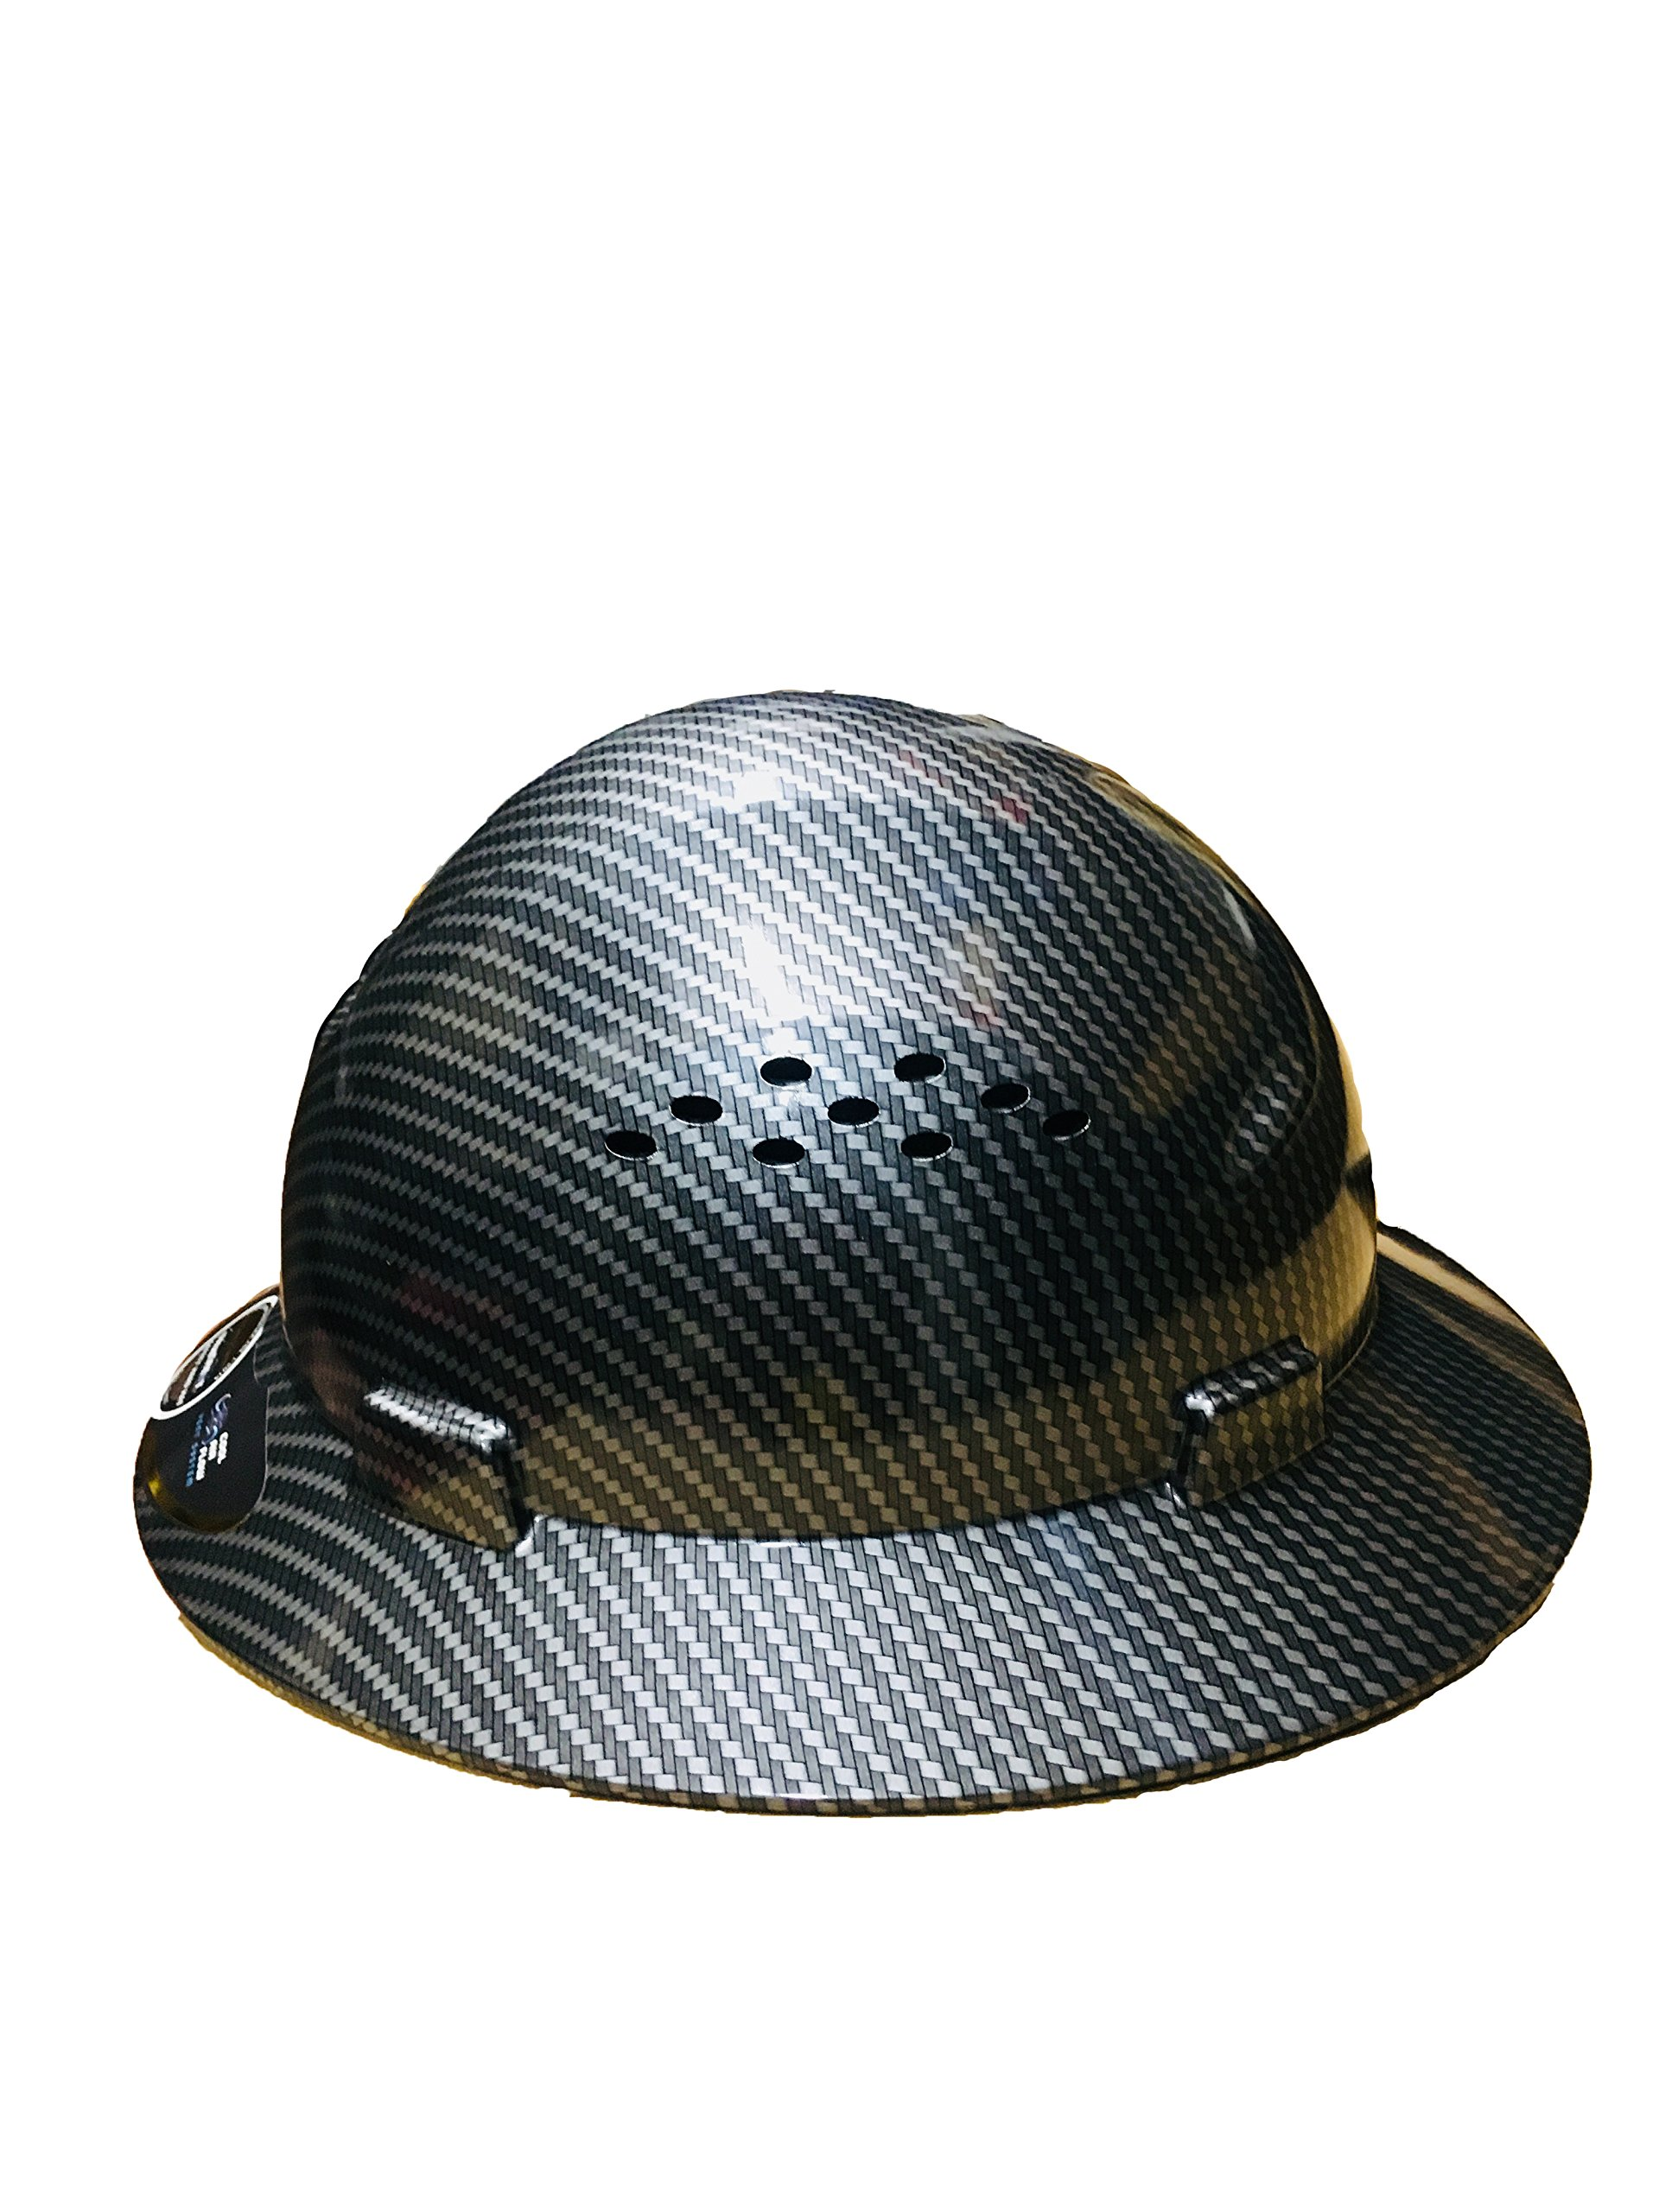 HDPE Hydro Dipped Black Full Brim Hardhat Carbon Fiber with Fast-Trac Suspension by IM Products (Image #2)